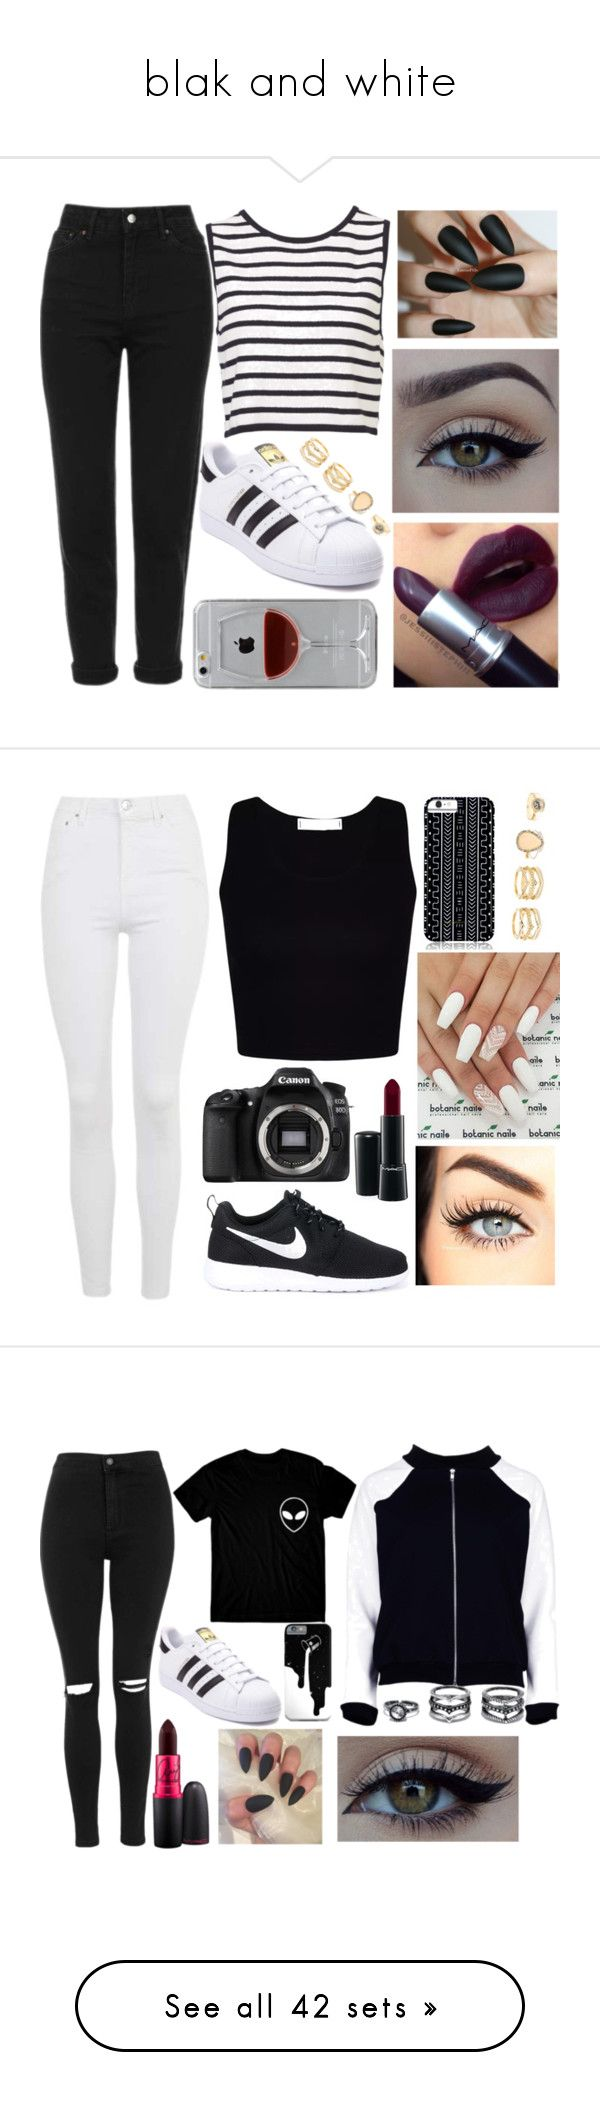 """blak and white"" by sofiacatania13 on Polyvore featuring Topshop, adidas, xO Design, LULUS, Reyes, Eos, NIKE, Savannah Hayes, MAC Cosmetics e Boohoo"